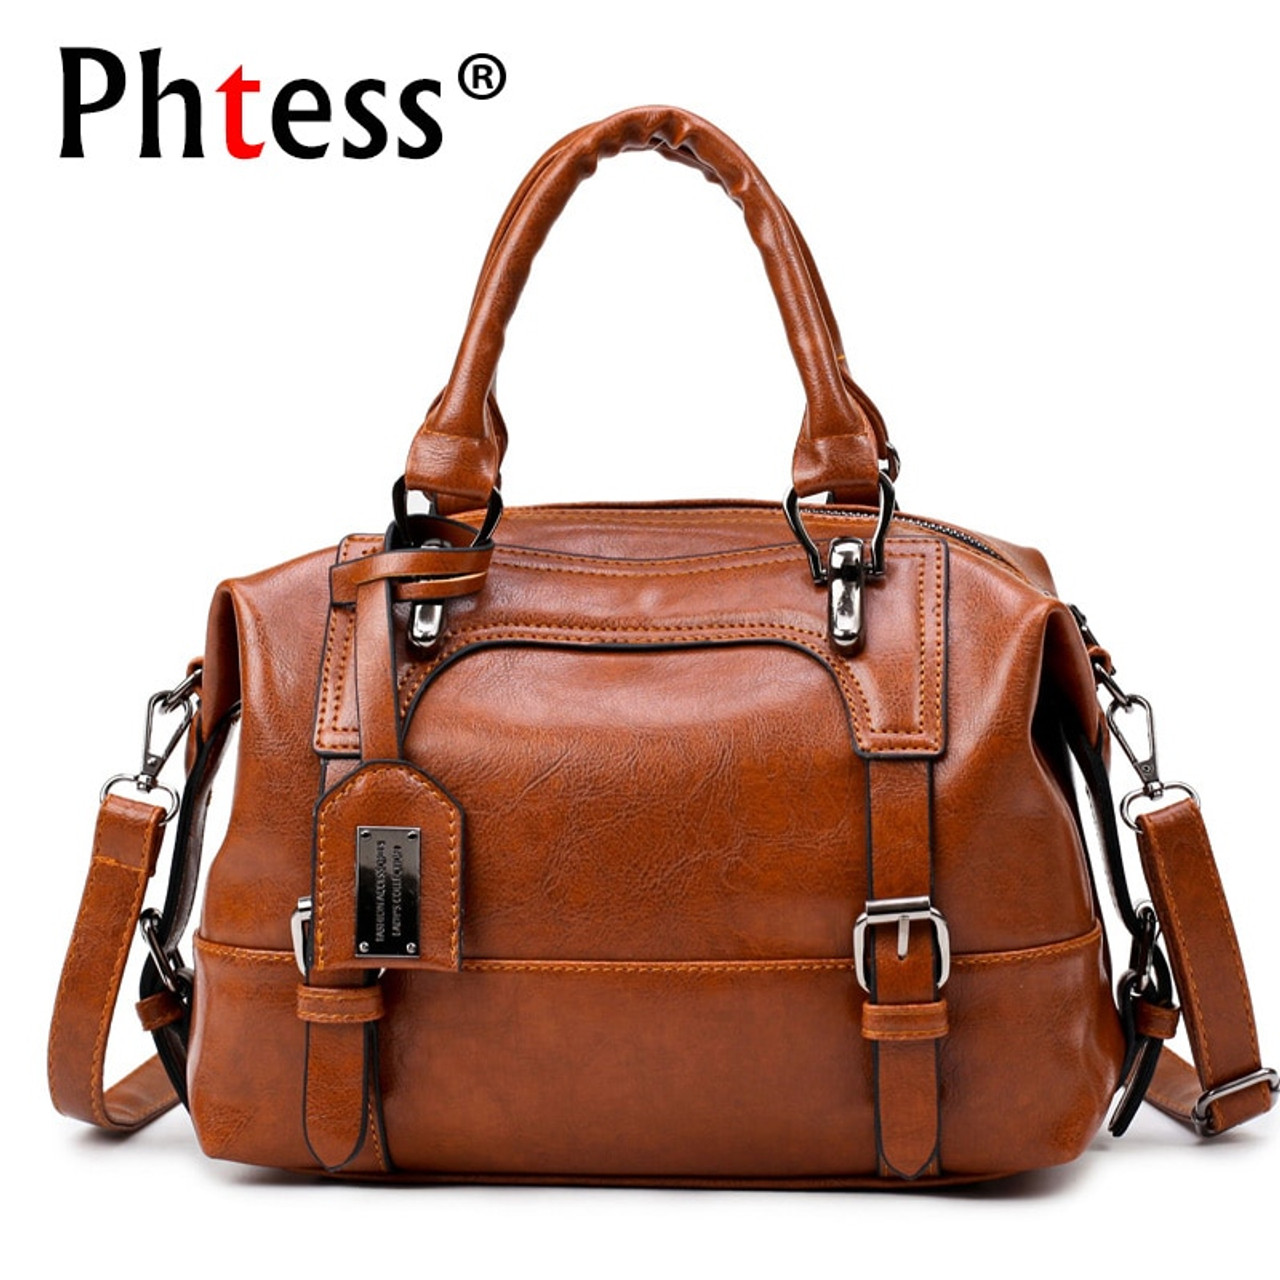 Boston Luxury Leather Handbags Women Bags Designer High Quality Famous  Brands Shoulder Bags Sac a Main ... c382ef9eb3794